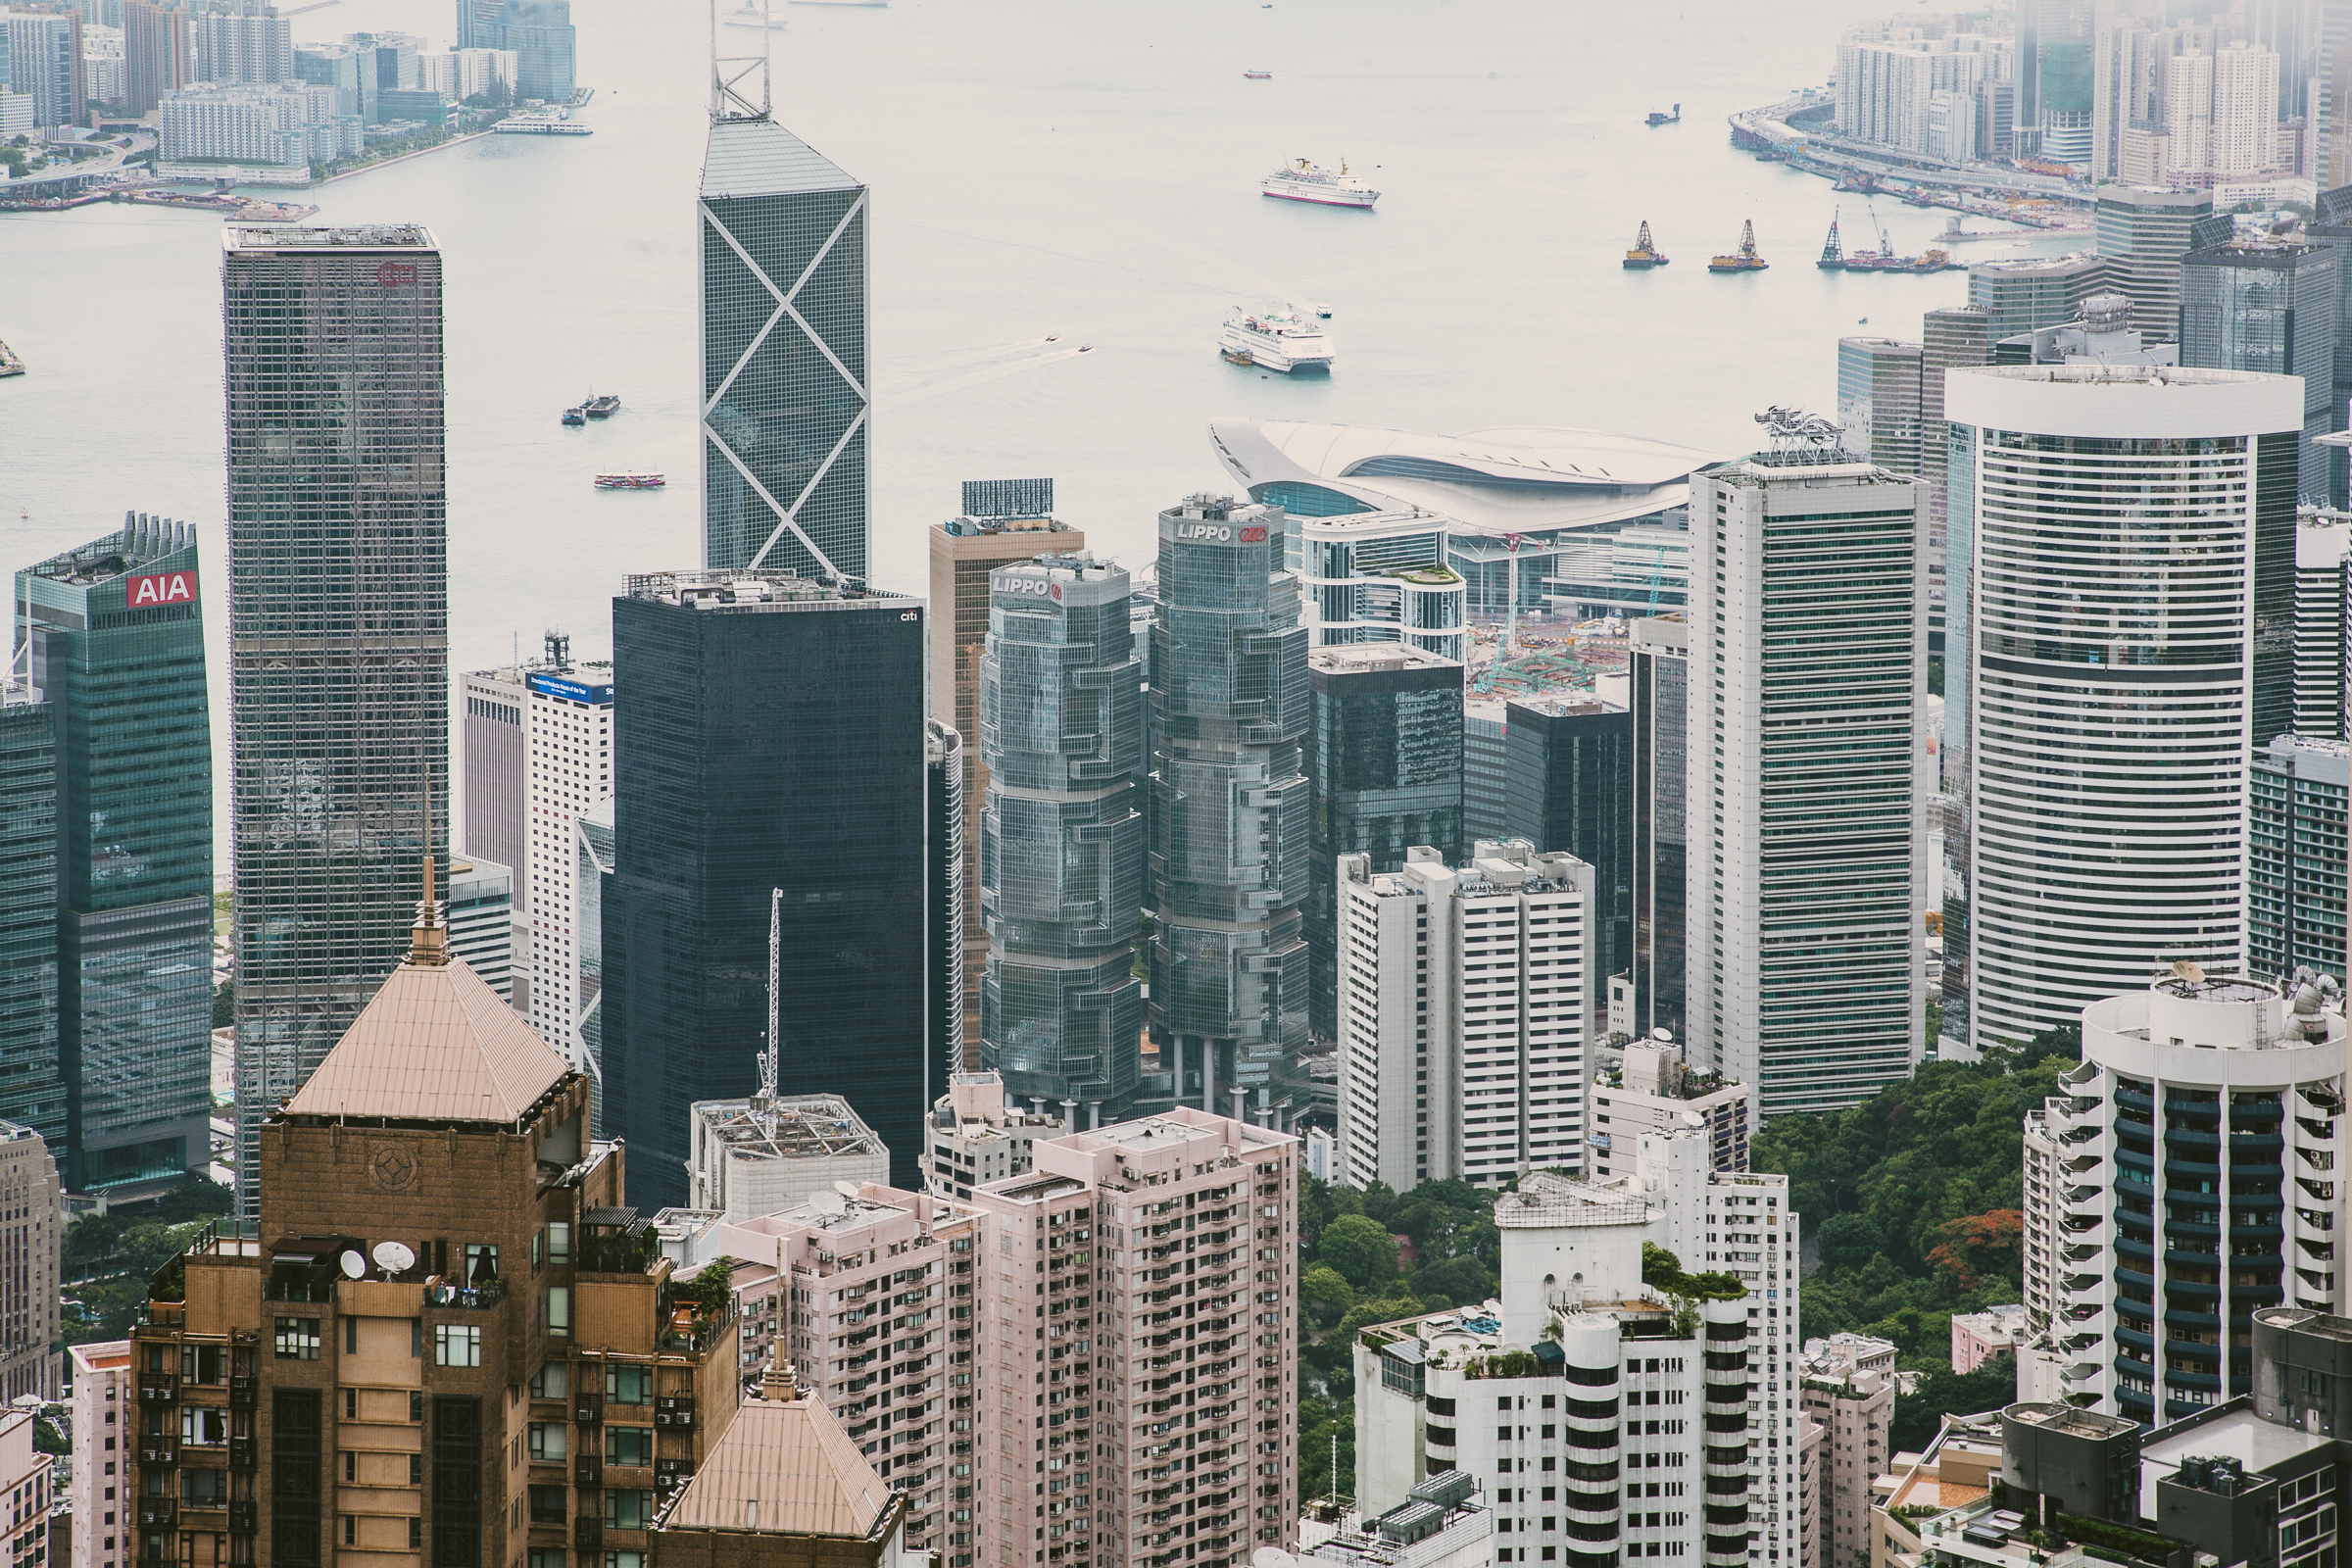 camera.lens: canon ef 24-105mm f/4 l is usm, camera: canon eos 5d, picture.aperture: 14.0, picture.exposure: 1/30sec, picture.iso: 100, picture.year: 2016, place.country: hongkong, place.location: hongkong